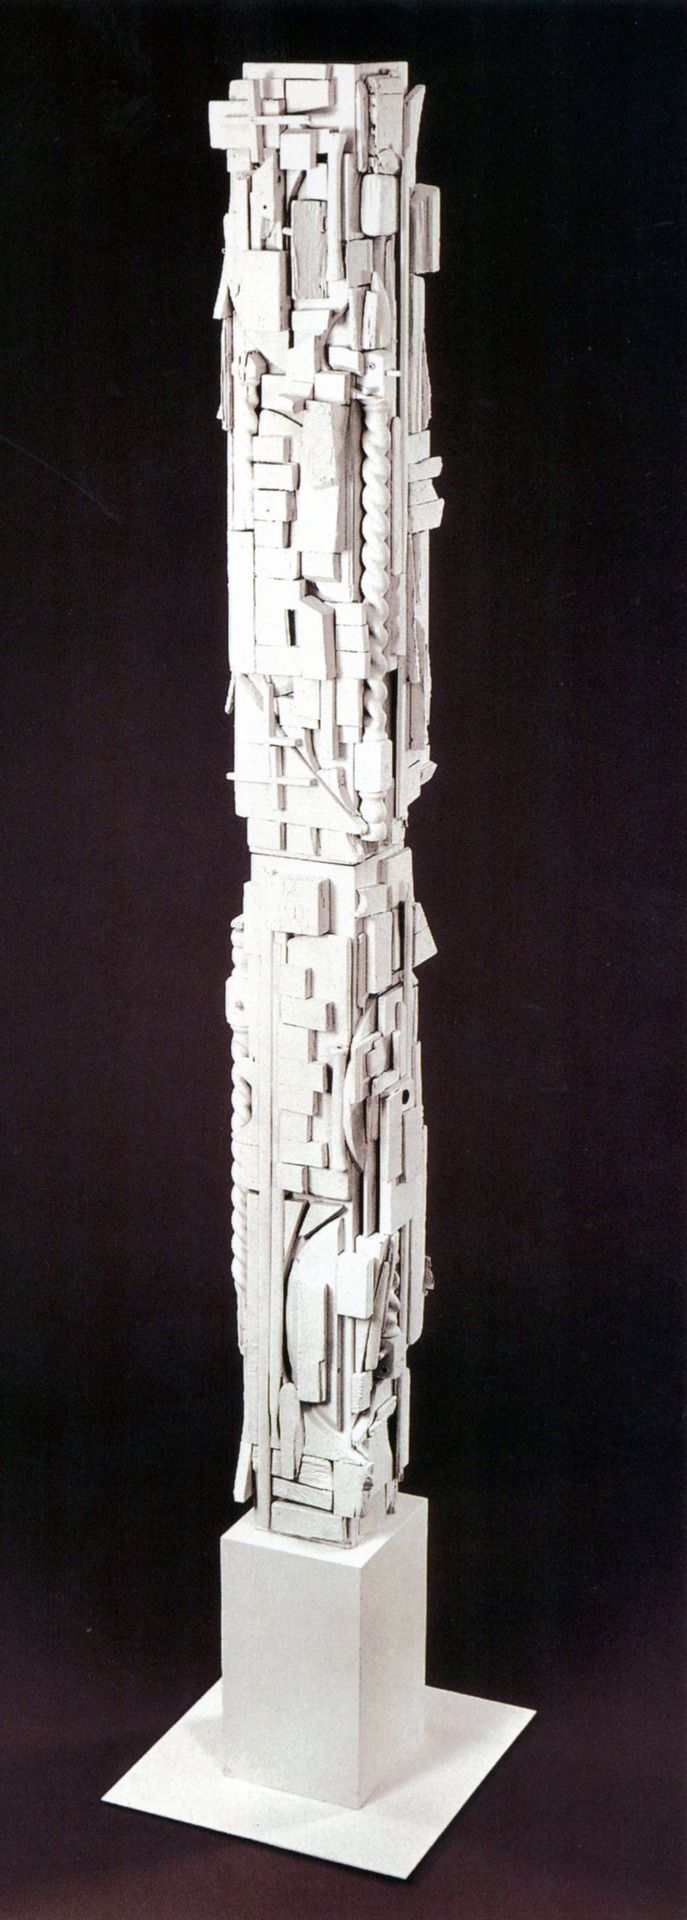 Louise Nevelson - White Column, From: Dawn's Wedding Feast, 1959